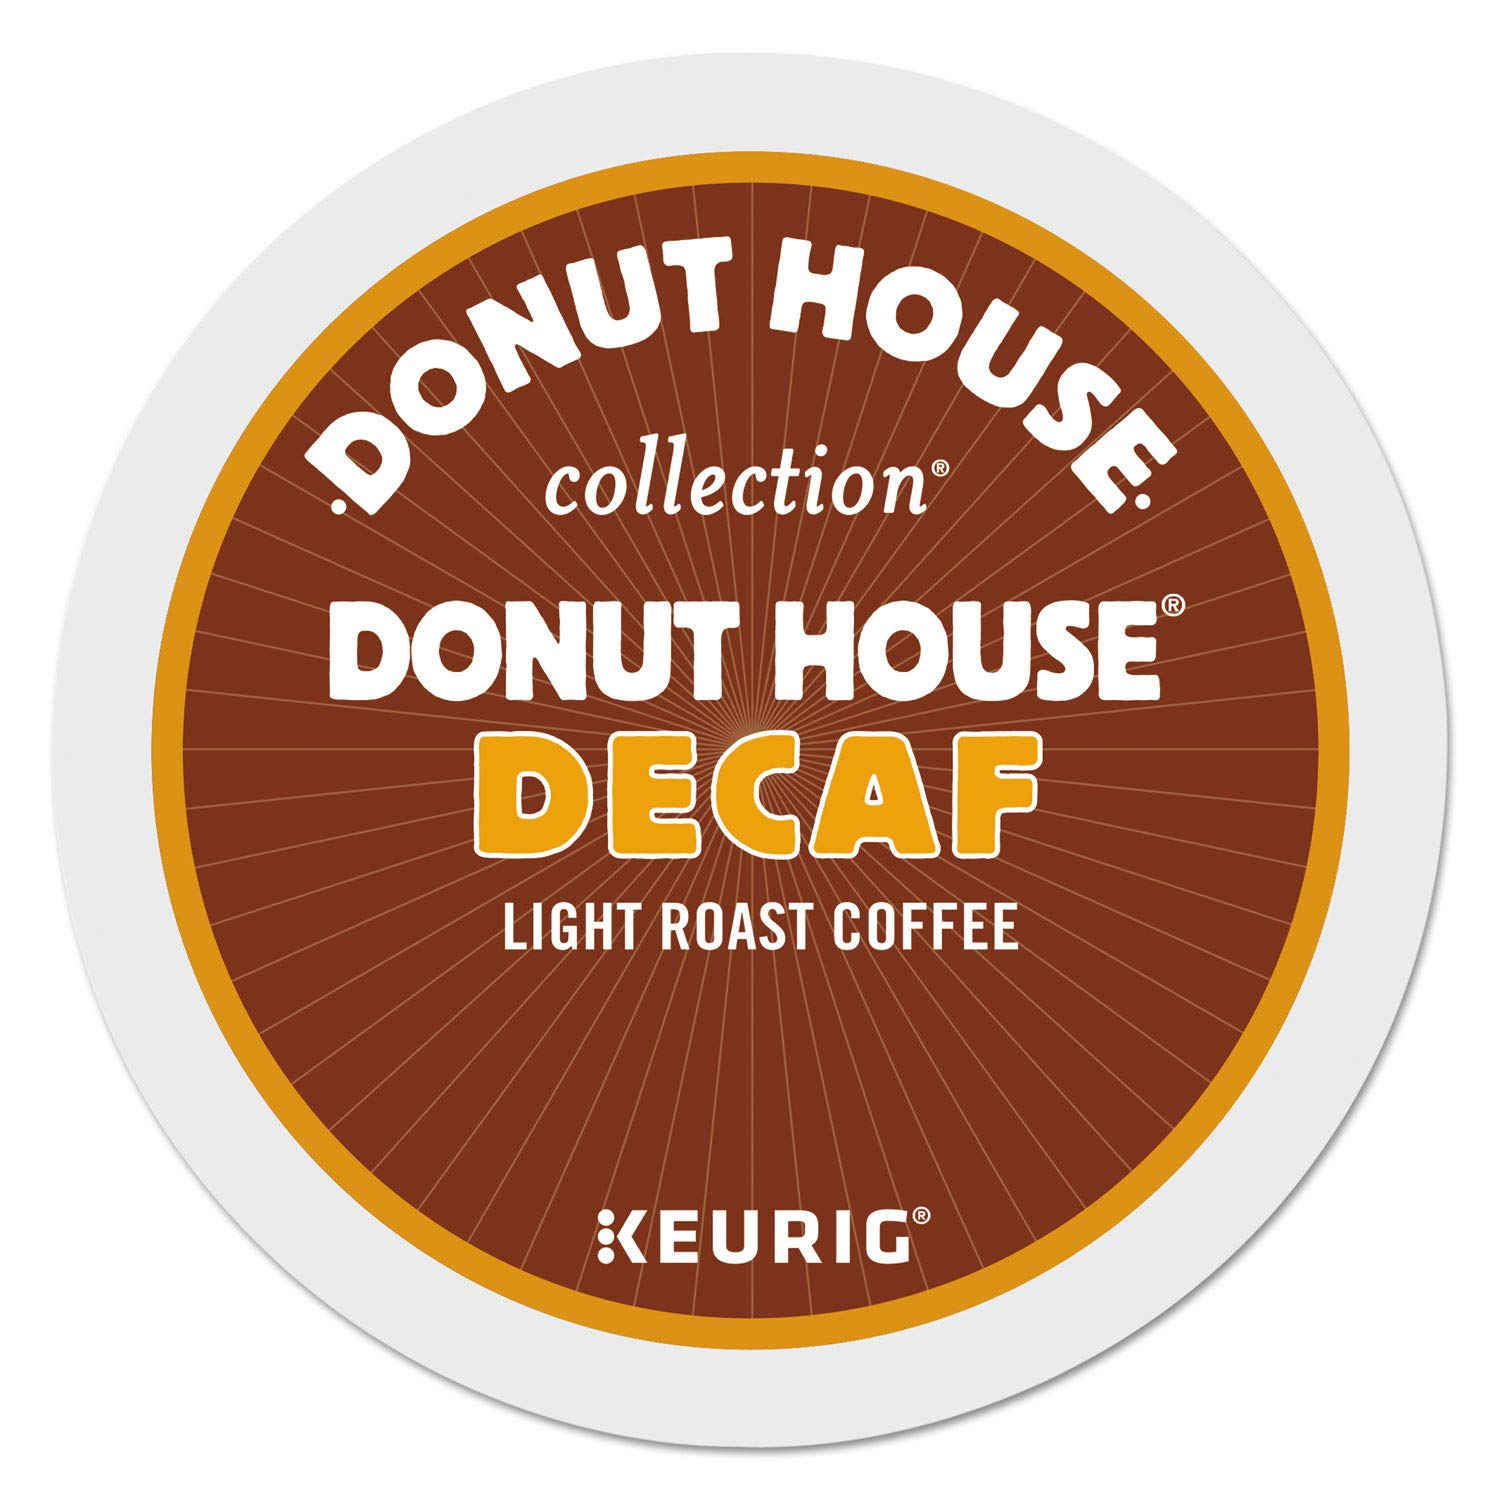 Donut House Collection Decaf, Single-Serve Keurig K-Cup Pods, Light Roast Coffee, 96 Count